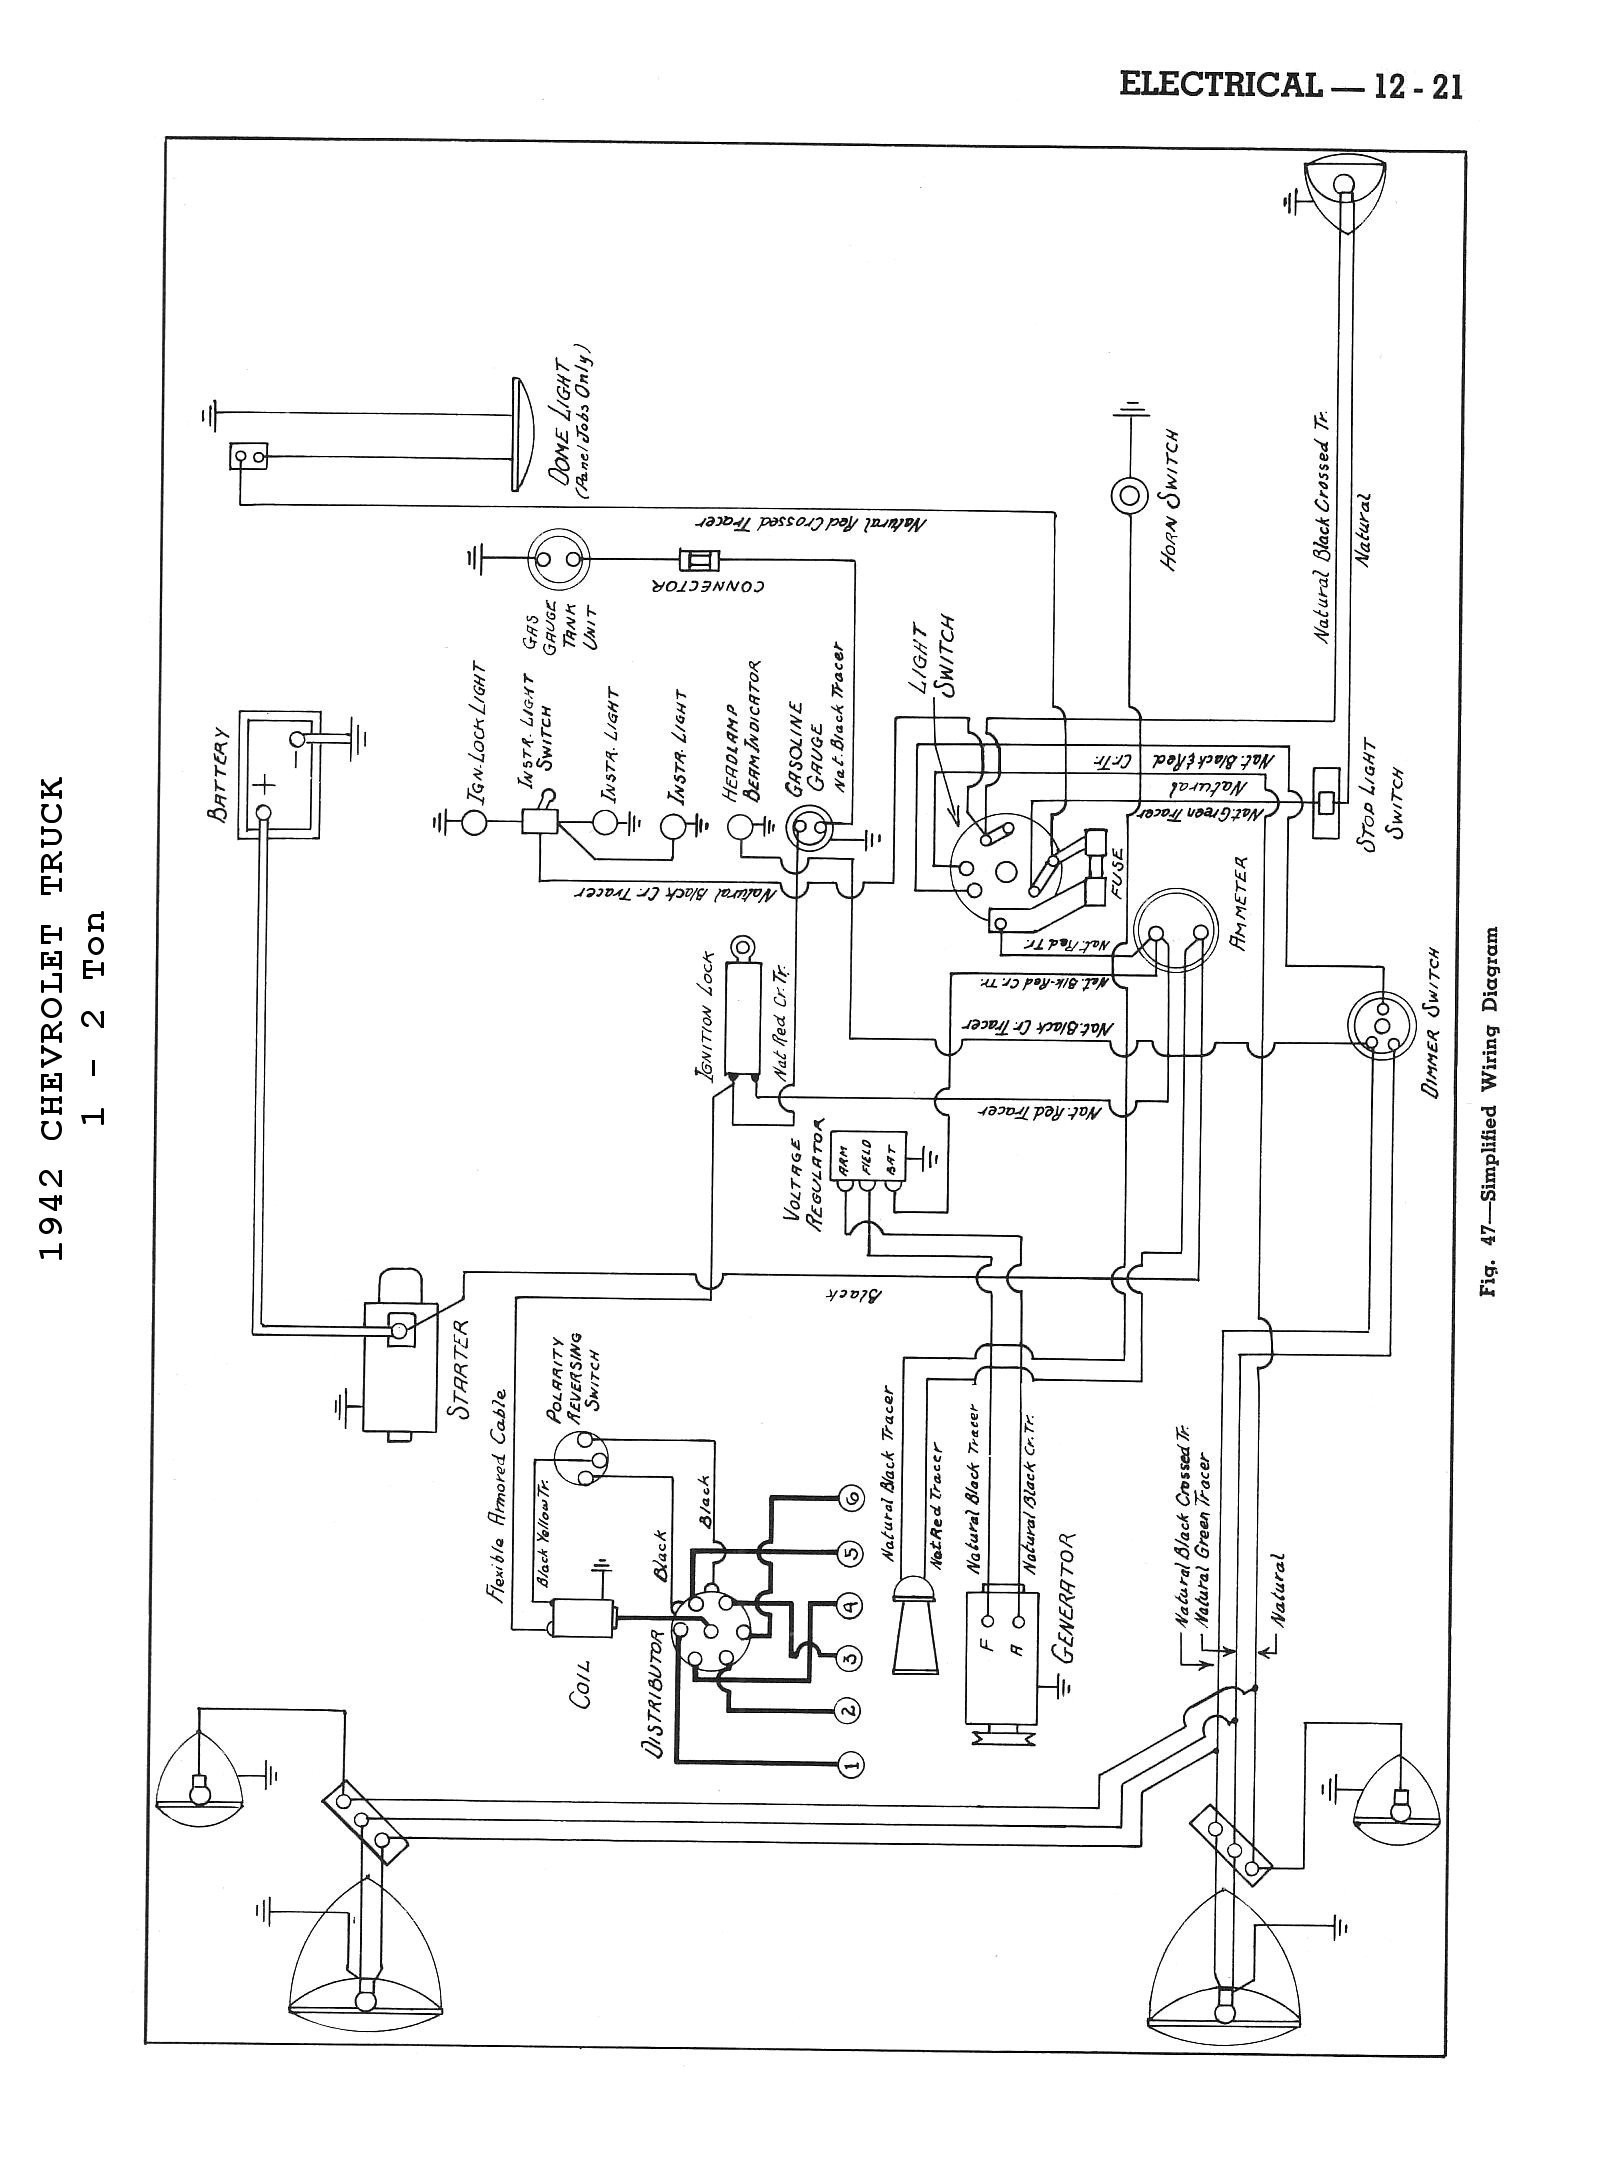 jl audio e1200 wiring diagram